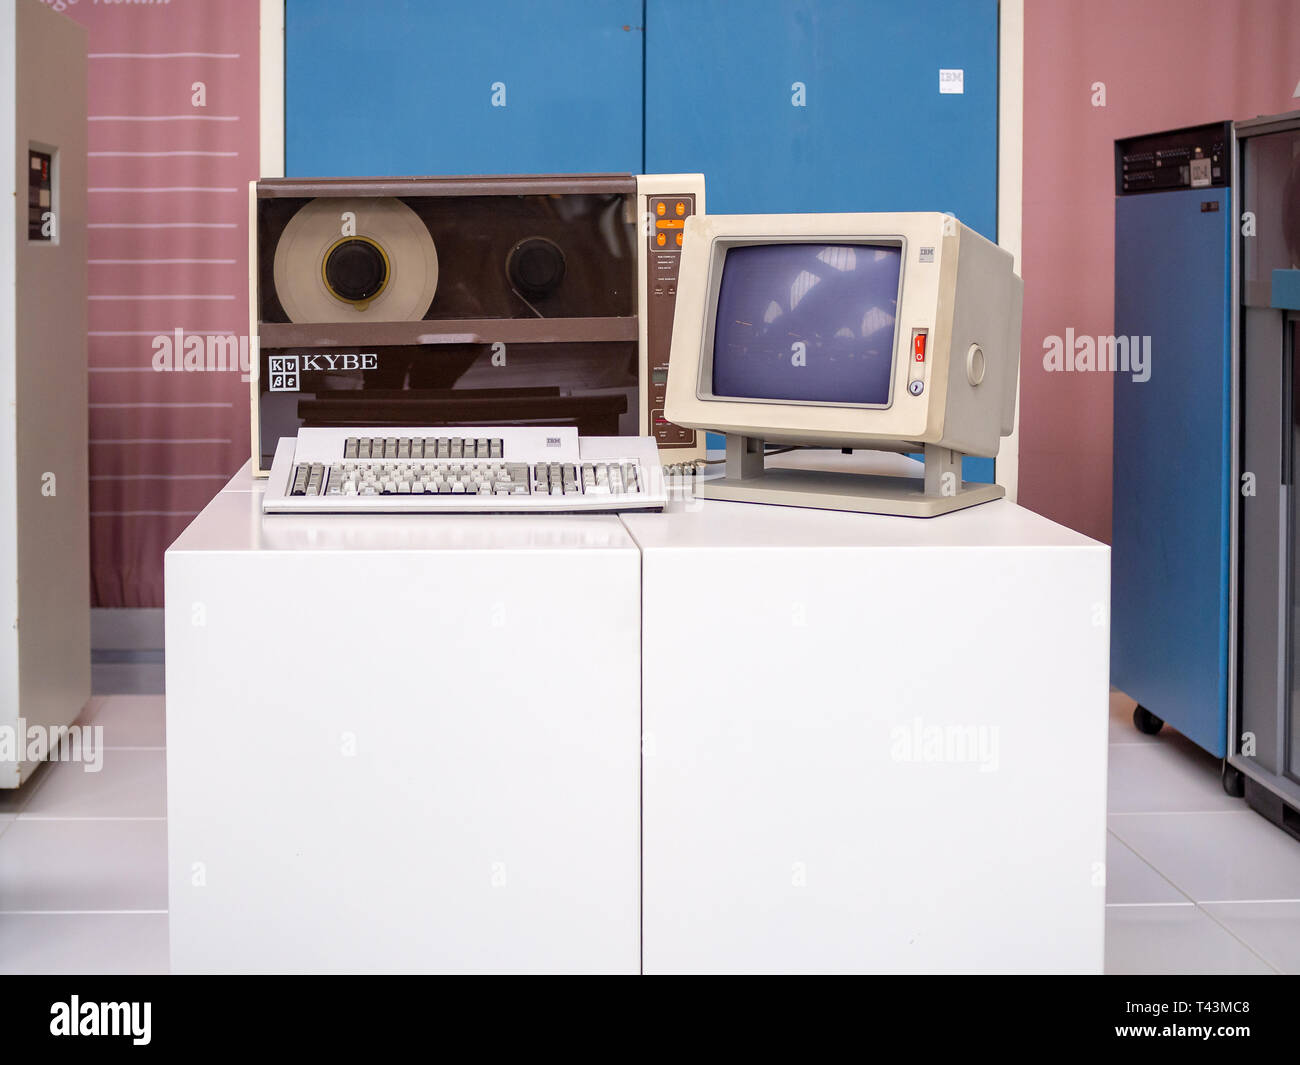 TERRASSA, SPAIN-MARCH 19, 2019: KYBE MLC-400 Model 440 Magnetic Tape Cleaner in the National Museum of Science and Technology of Catalonia - Stock Image